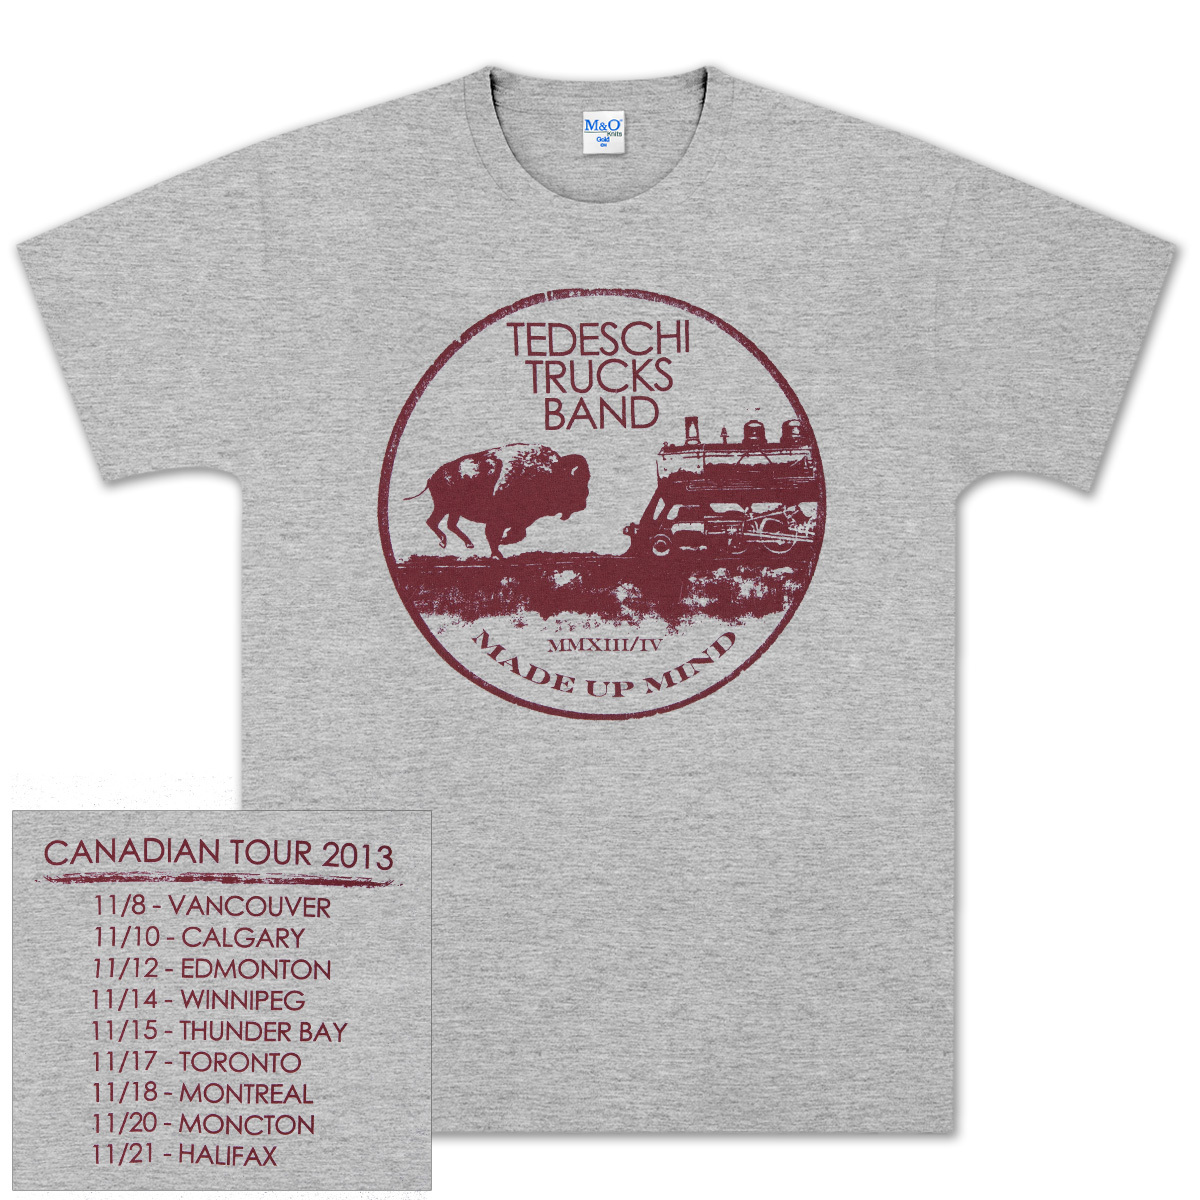 TTB 2013 Canadian Made Up Mind Tour Mens T - Heather Grey